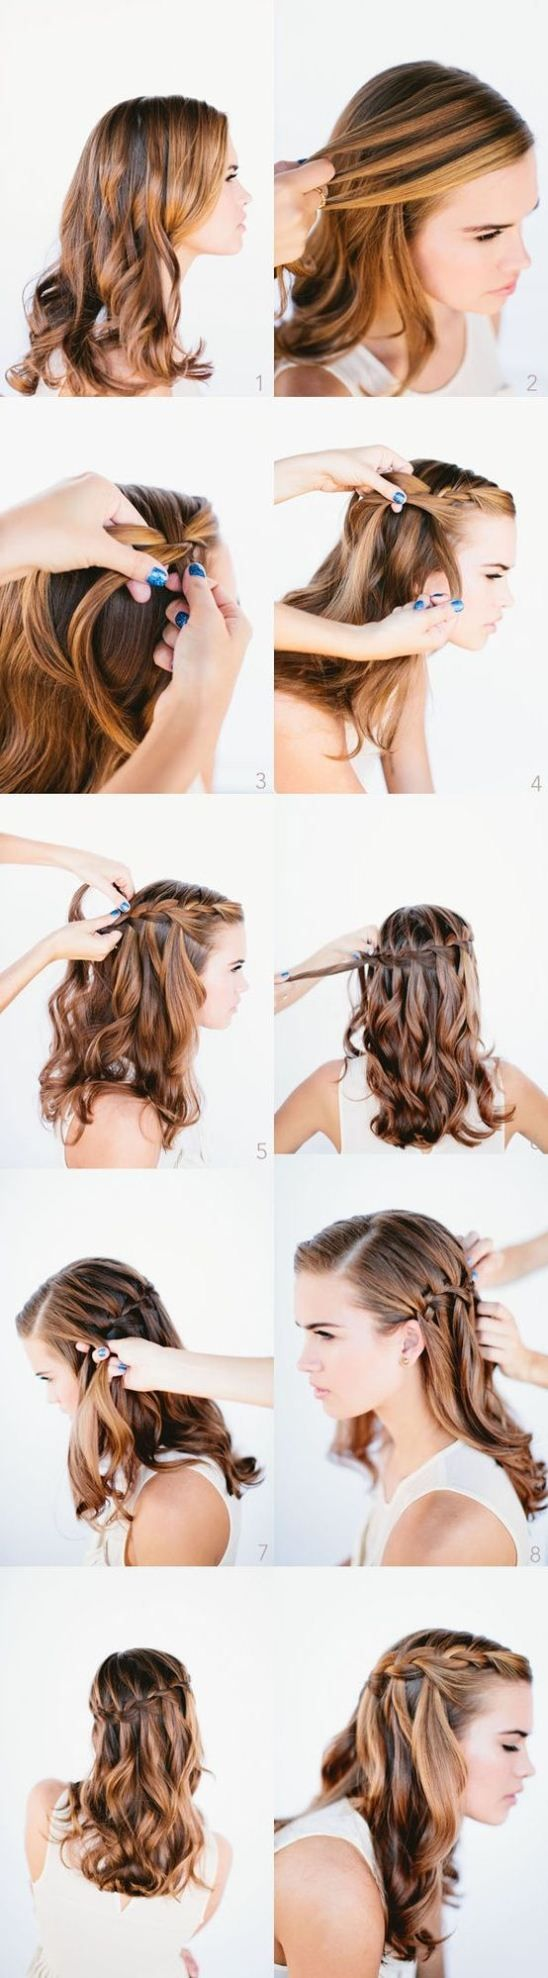 Wedding Hair how-to